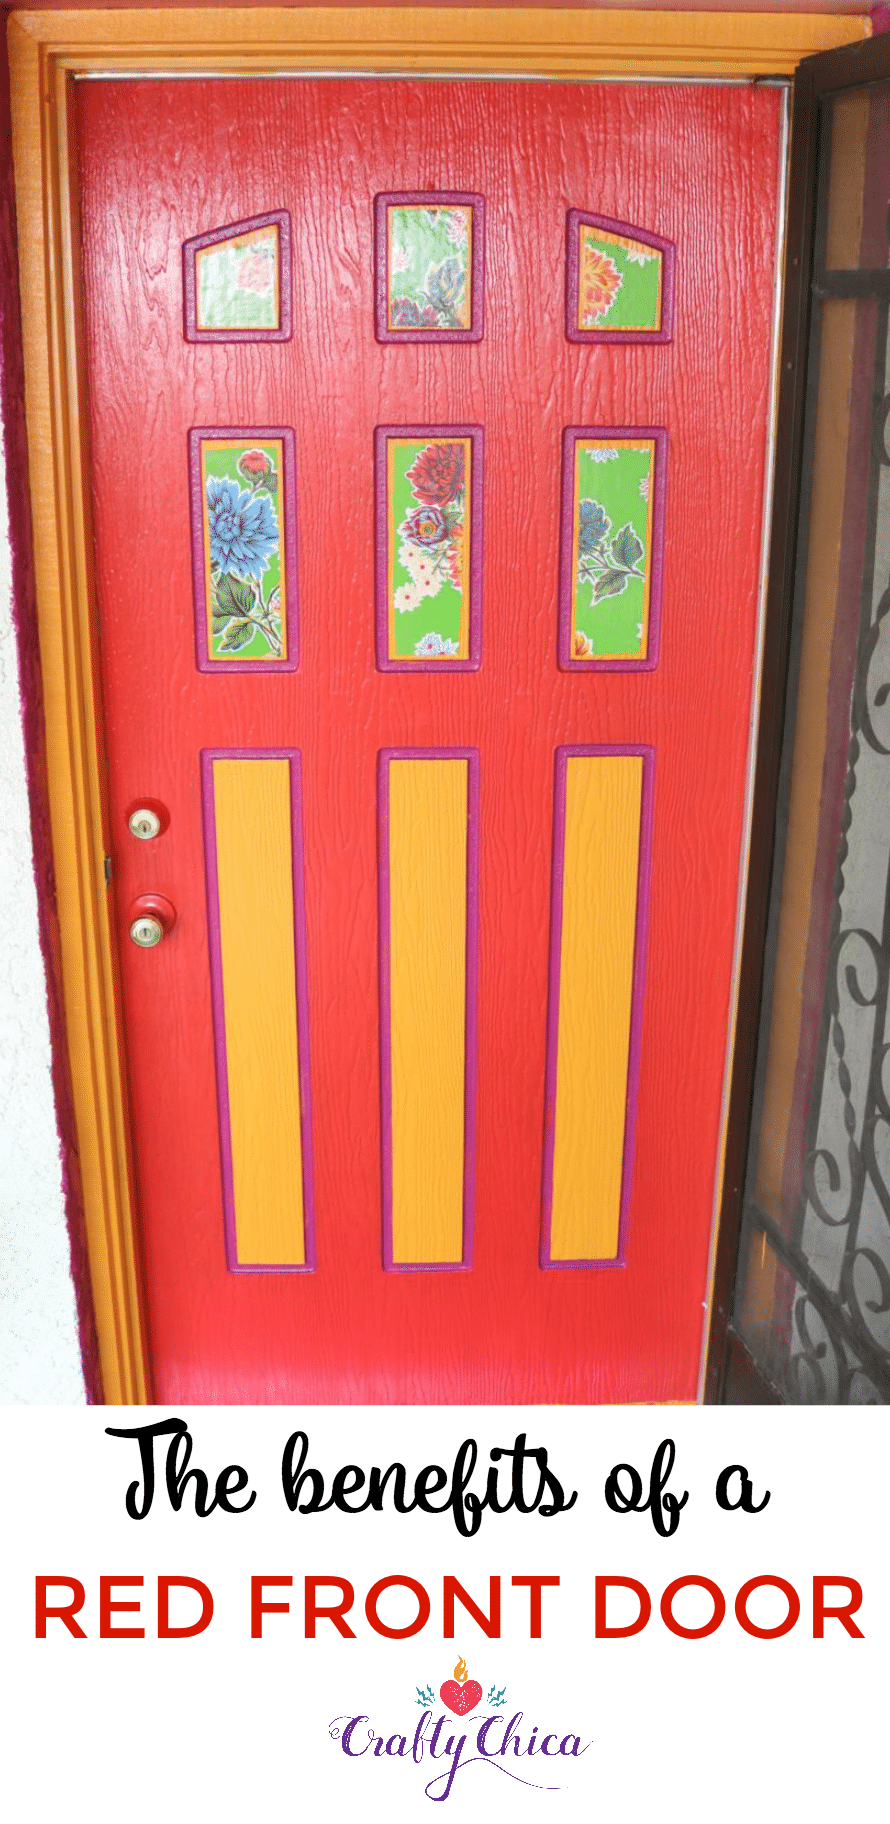 Meaning of a red front door, CraftyChica.com